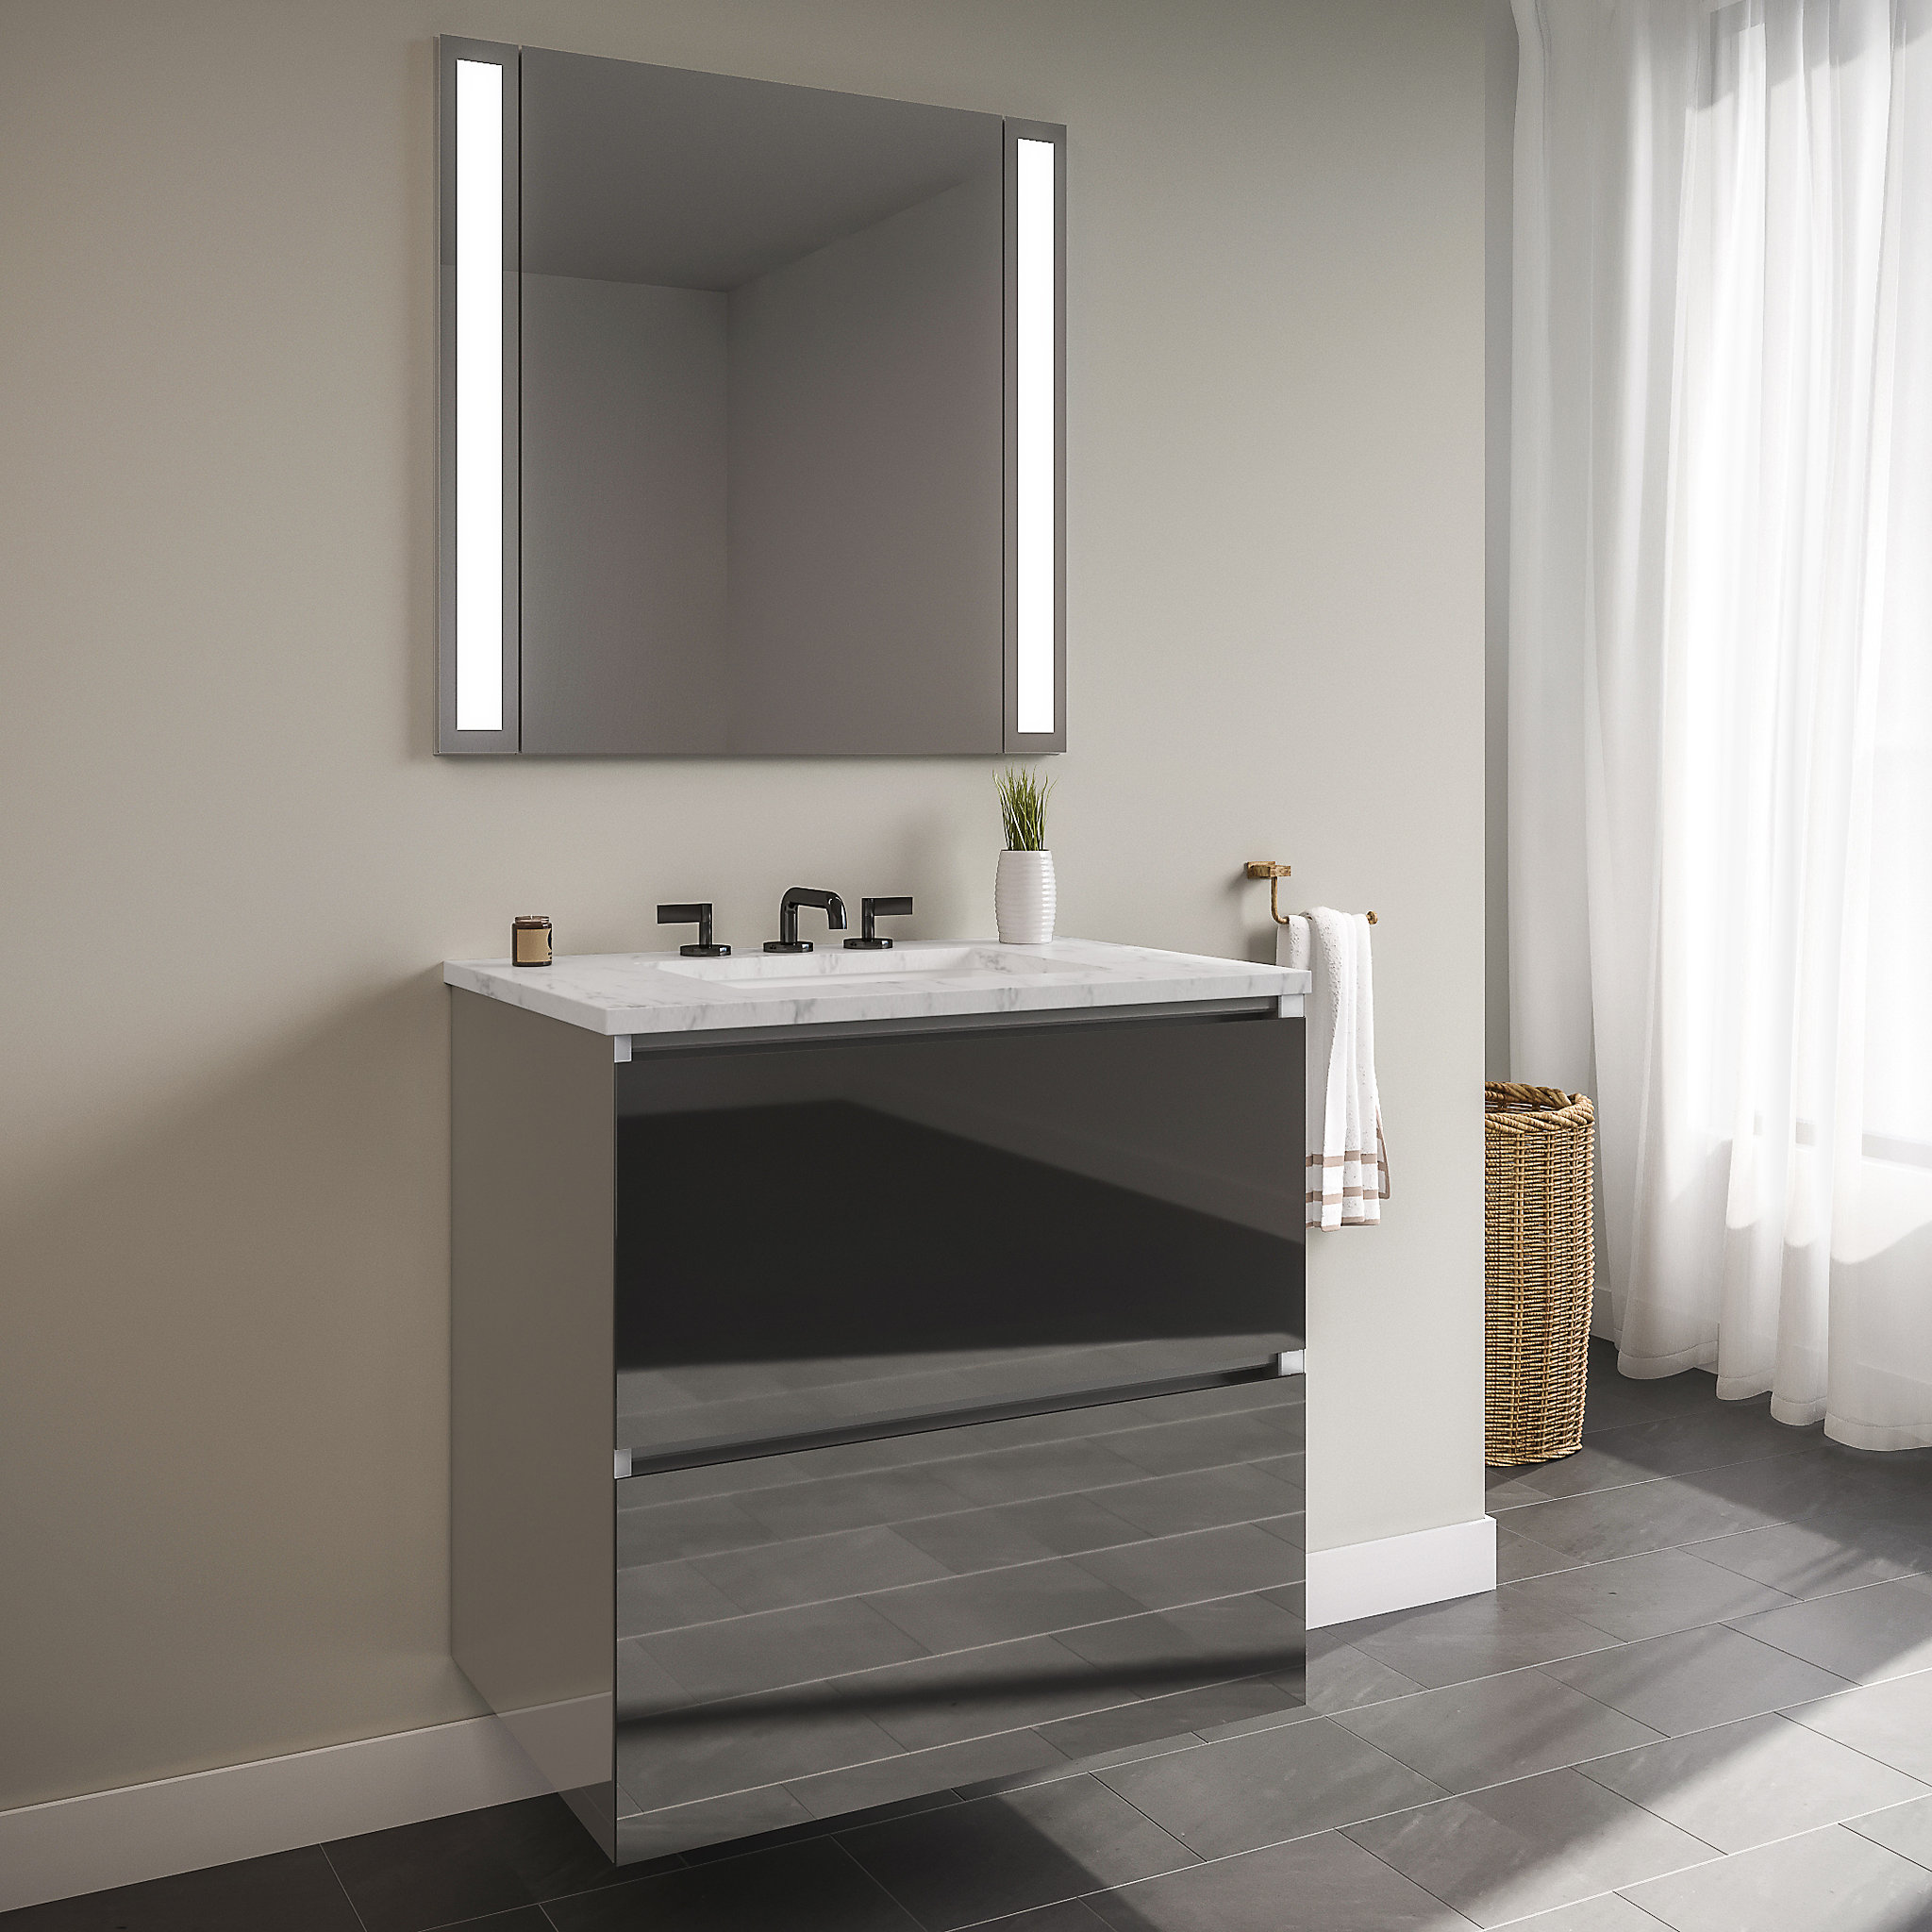 "Robern 36119400NB00002 Curated Cartesian Vanity, 36"" x 15"" x 21"", Two Drawer, Tinted Gray Mirror Glass, Plumbing Drawer, Full Dr"